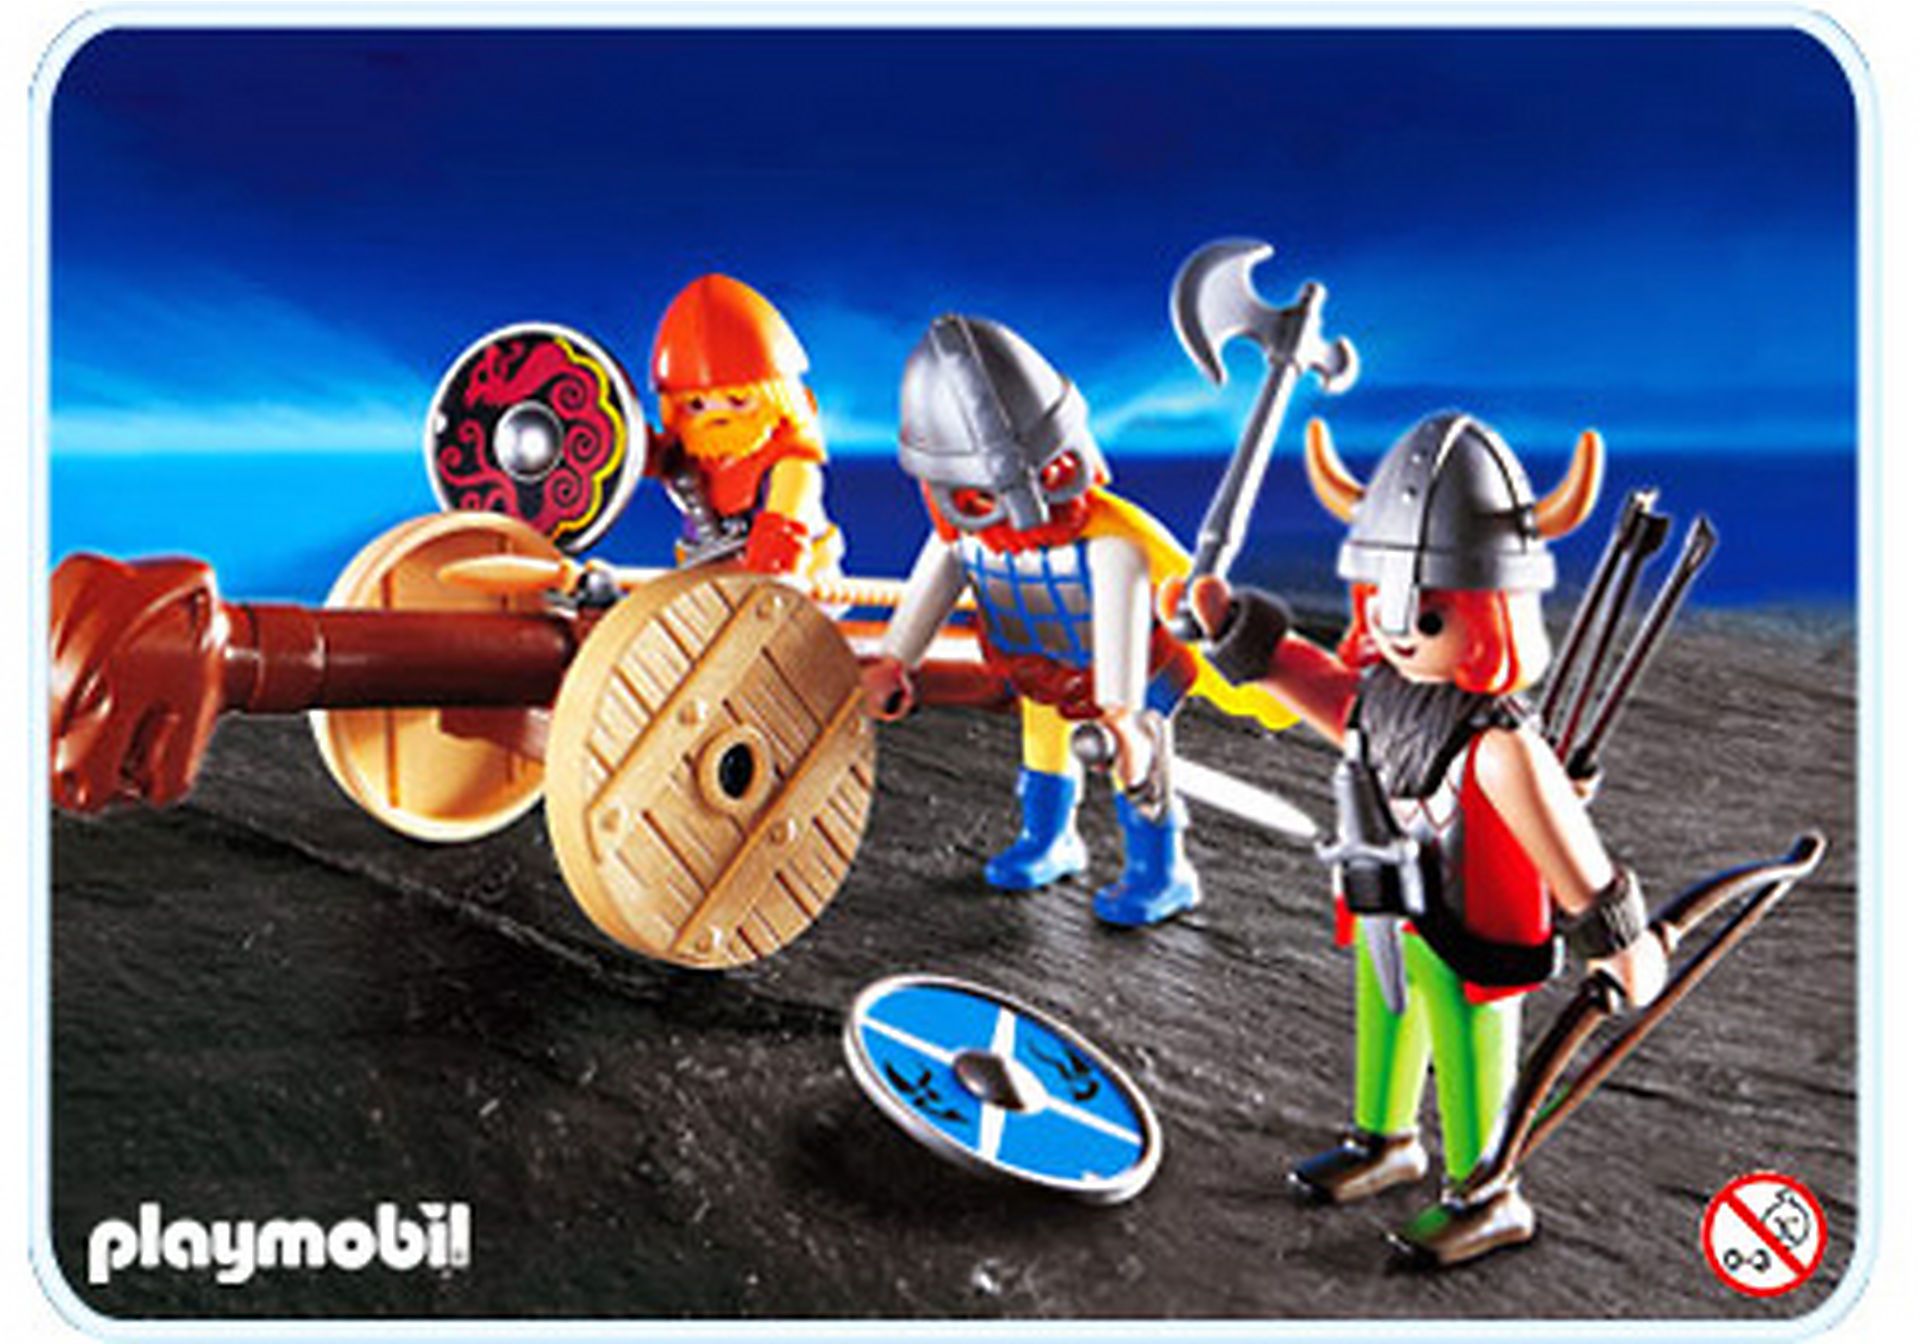 http://media.playmobil.com/i/playmobil/3153-A_product_detail/Wikinger mit Rammbock